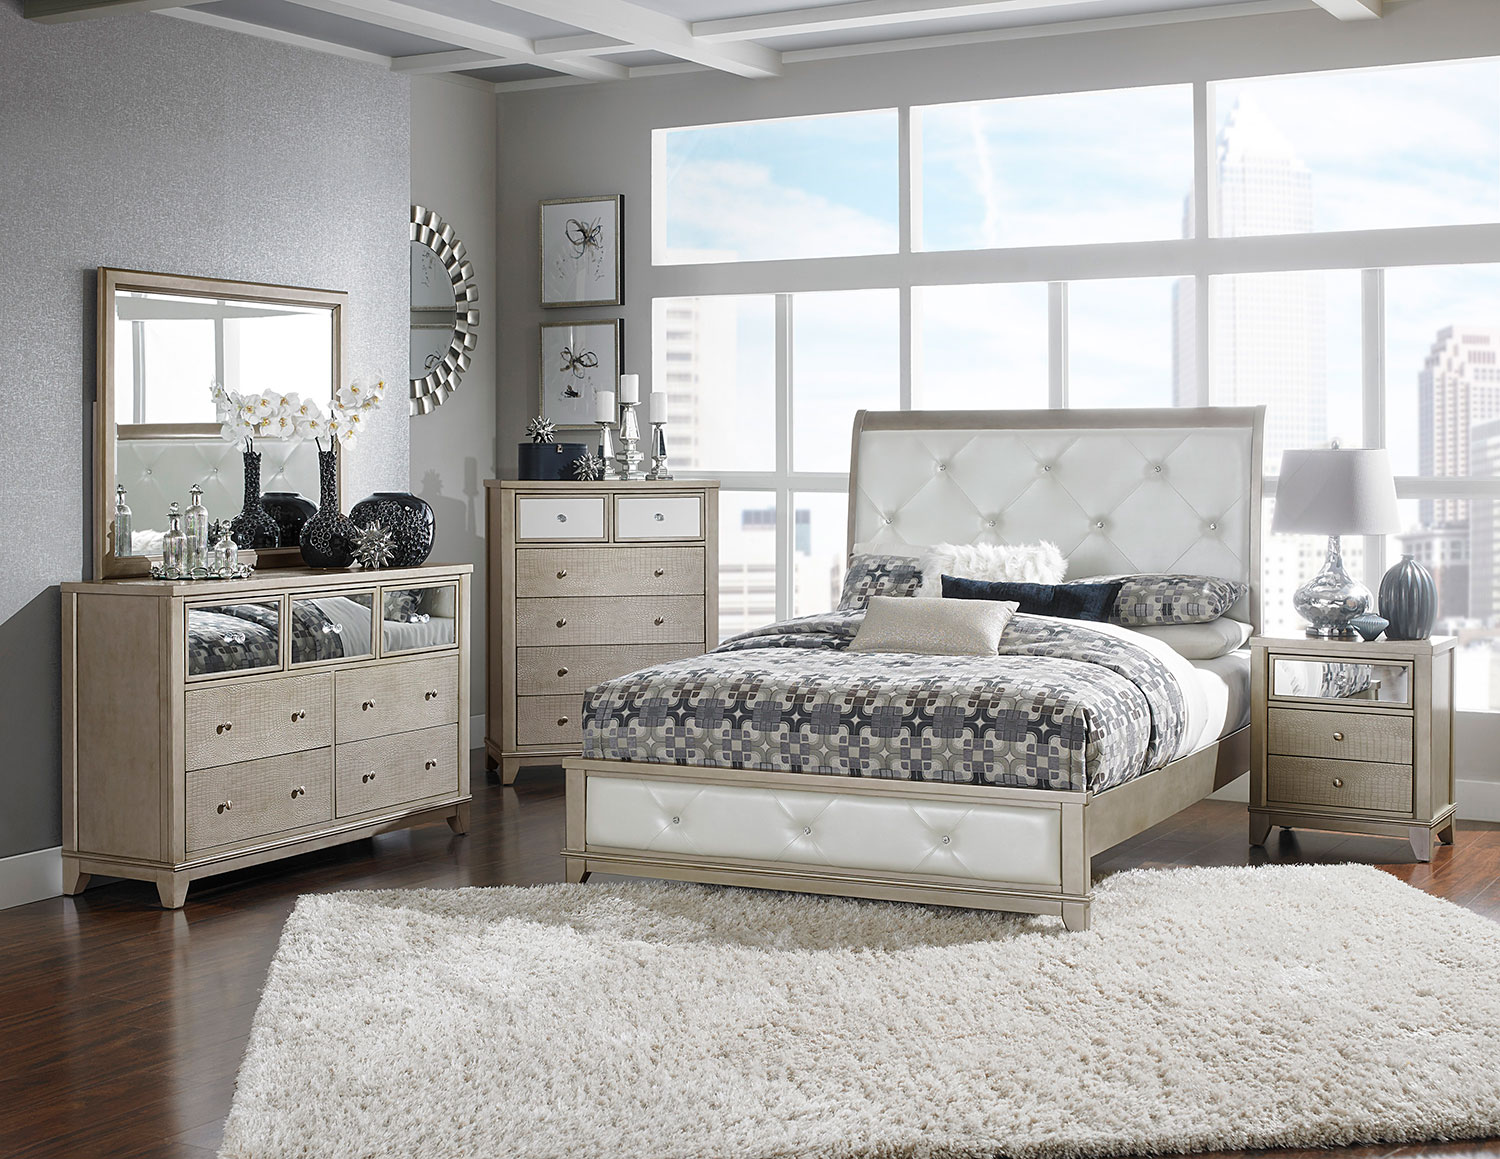 Homelegance Odelia Button Tufted Upholstered Sleigh Bedroom Set - Silver